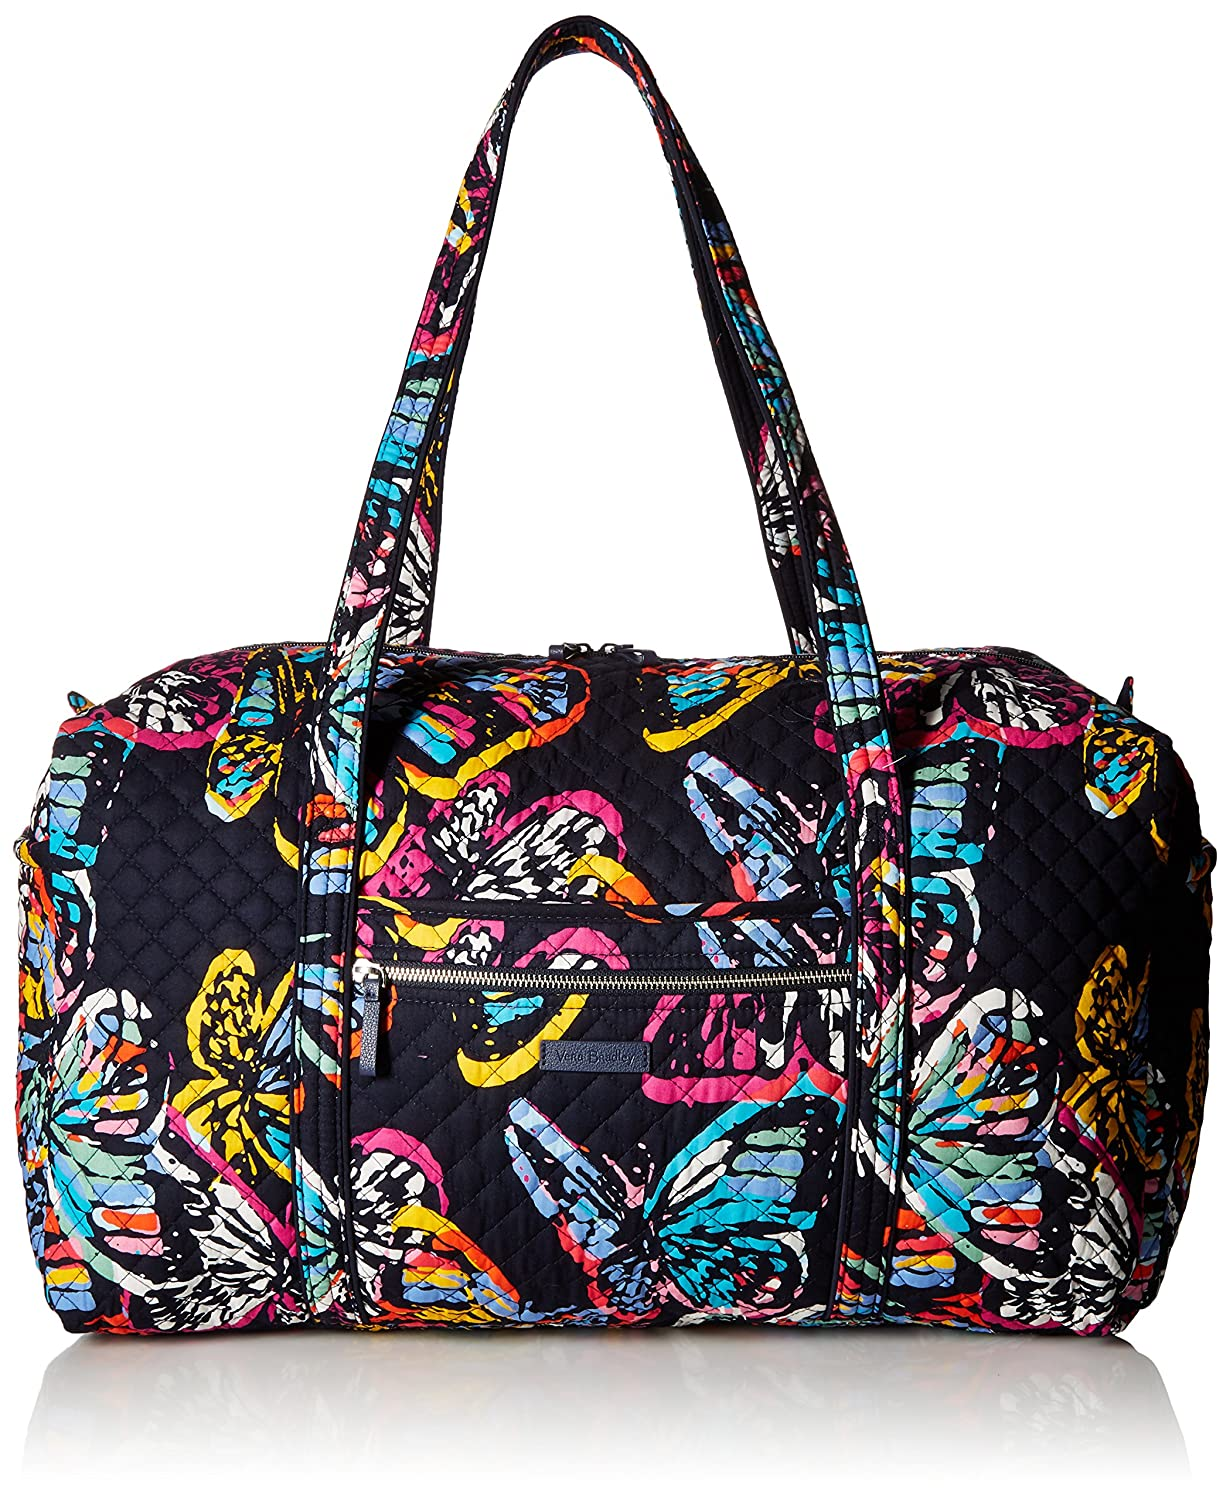 e46066f480f59f Amazon.com: Vera Bradley Iconic Large Travel Duffel, Signature Cotton,  Butterfly Flutter, butterfly flutter, One Size: Clothing